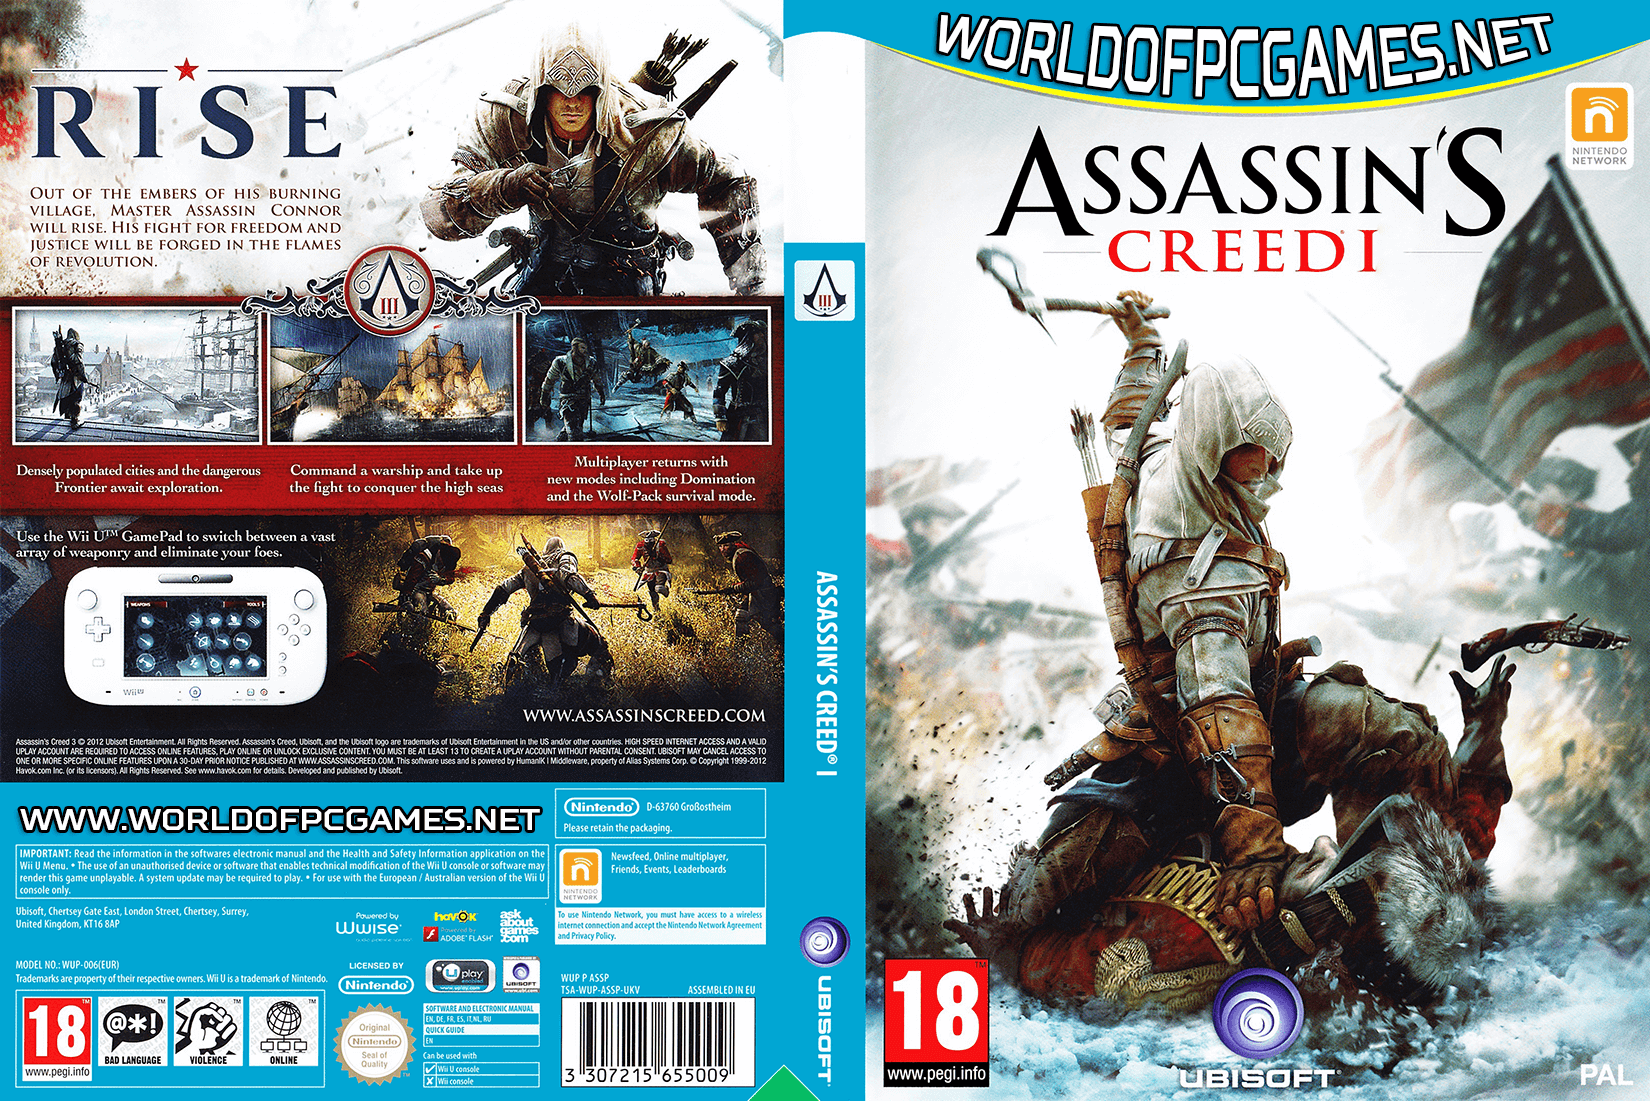 Assassins Creed 1 Free Download PC Game Full Version ISO